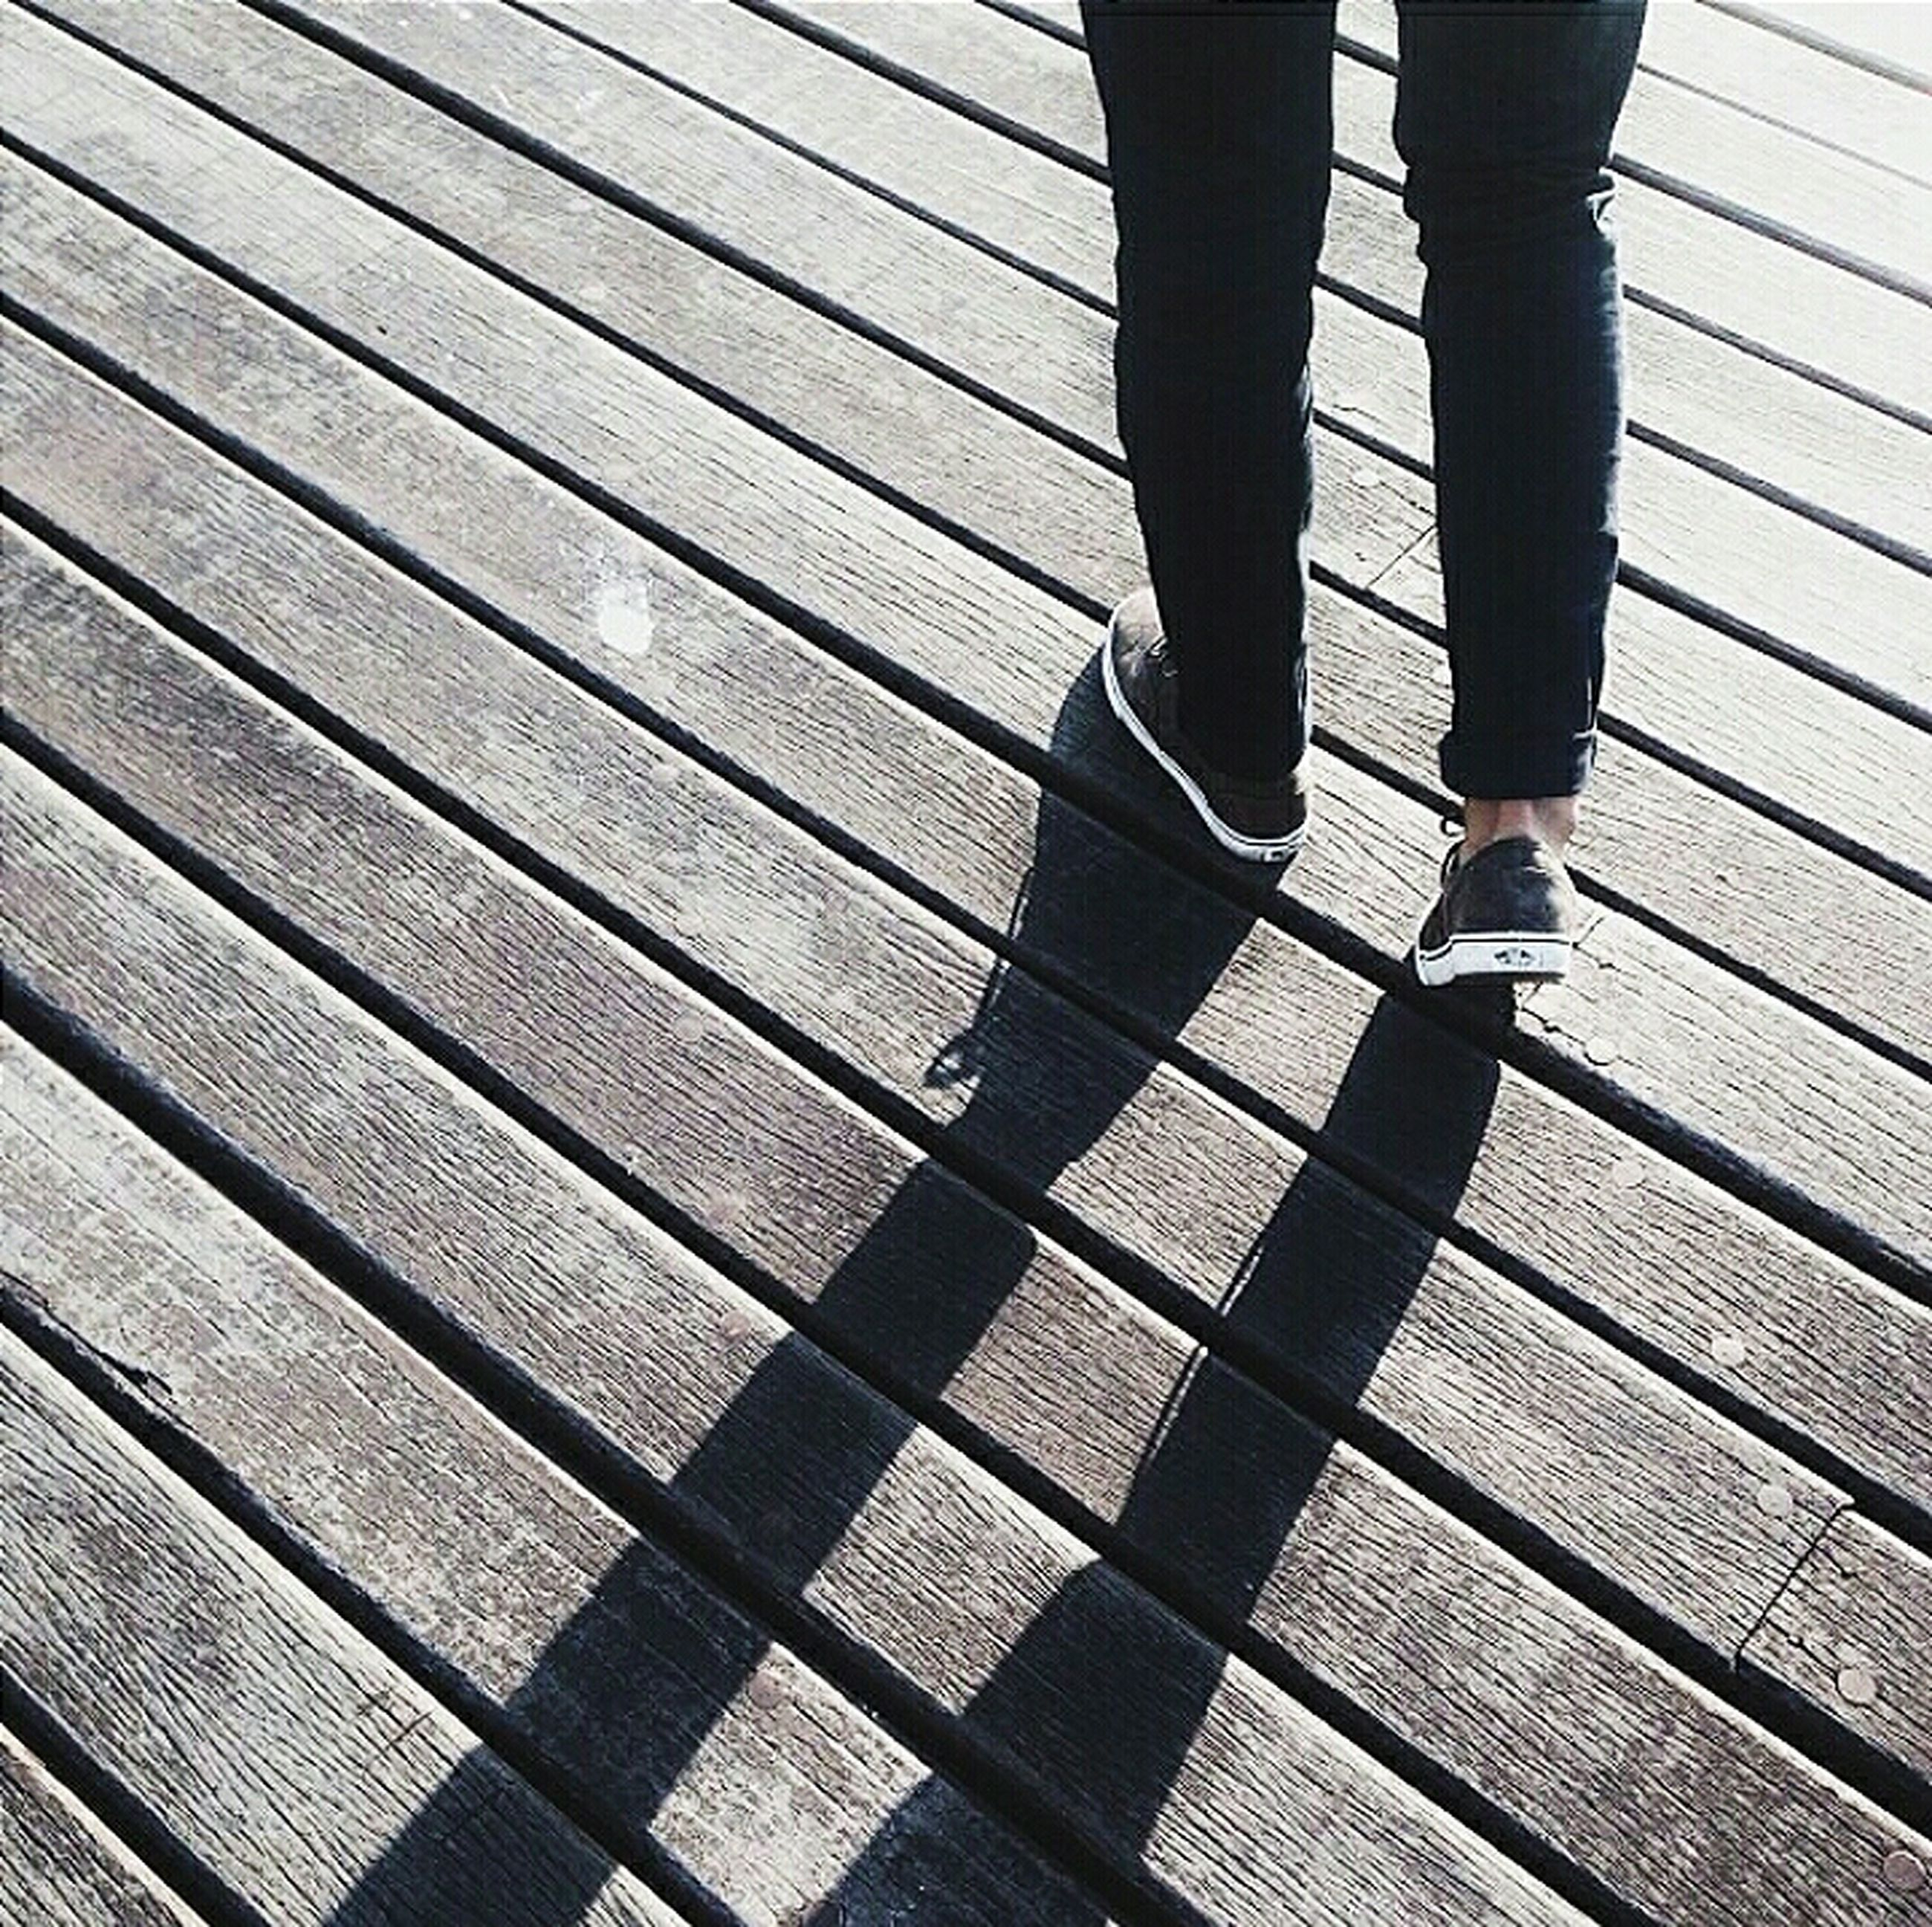 low section, person, lifestyles, standing, men, walking, shoe, human foot, pattern, high angle view, unrecognizable person, leisure activity, footwear, jeans, wood - material, day